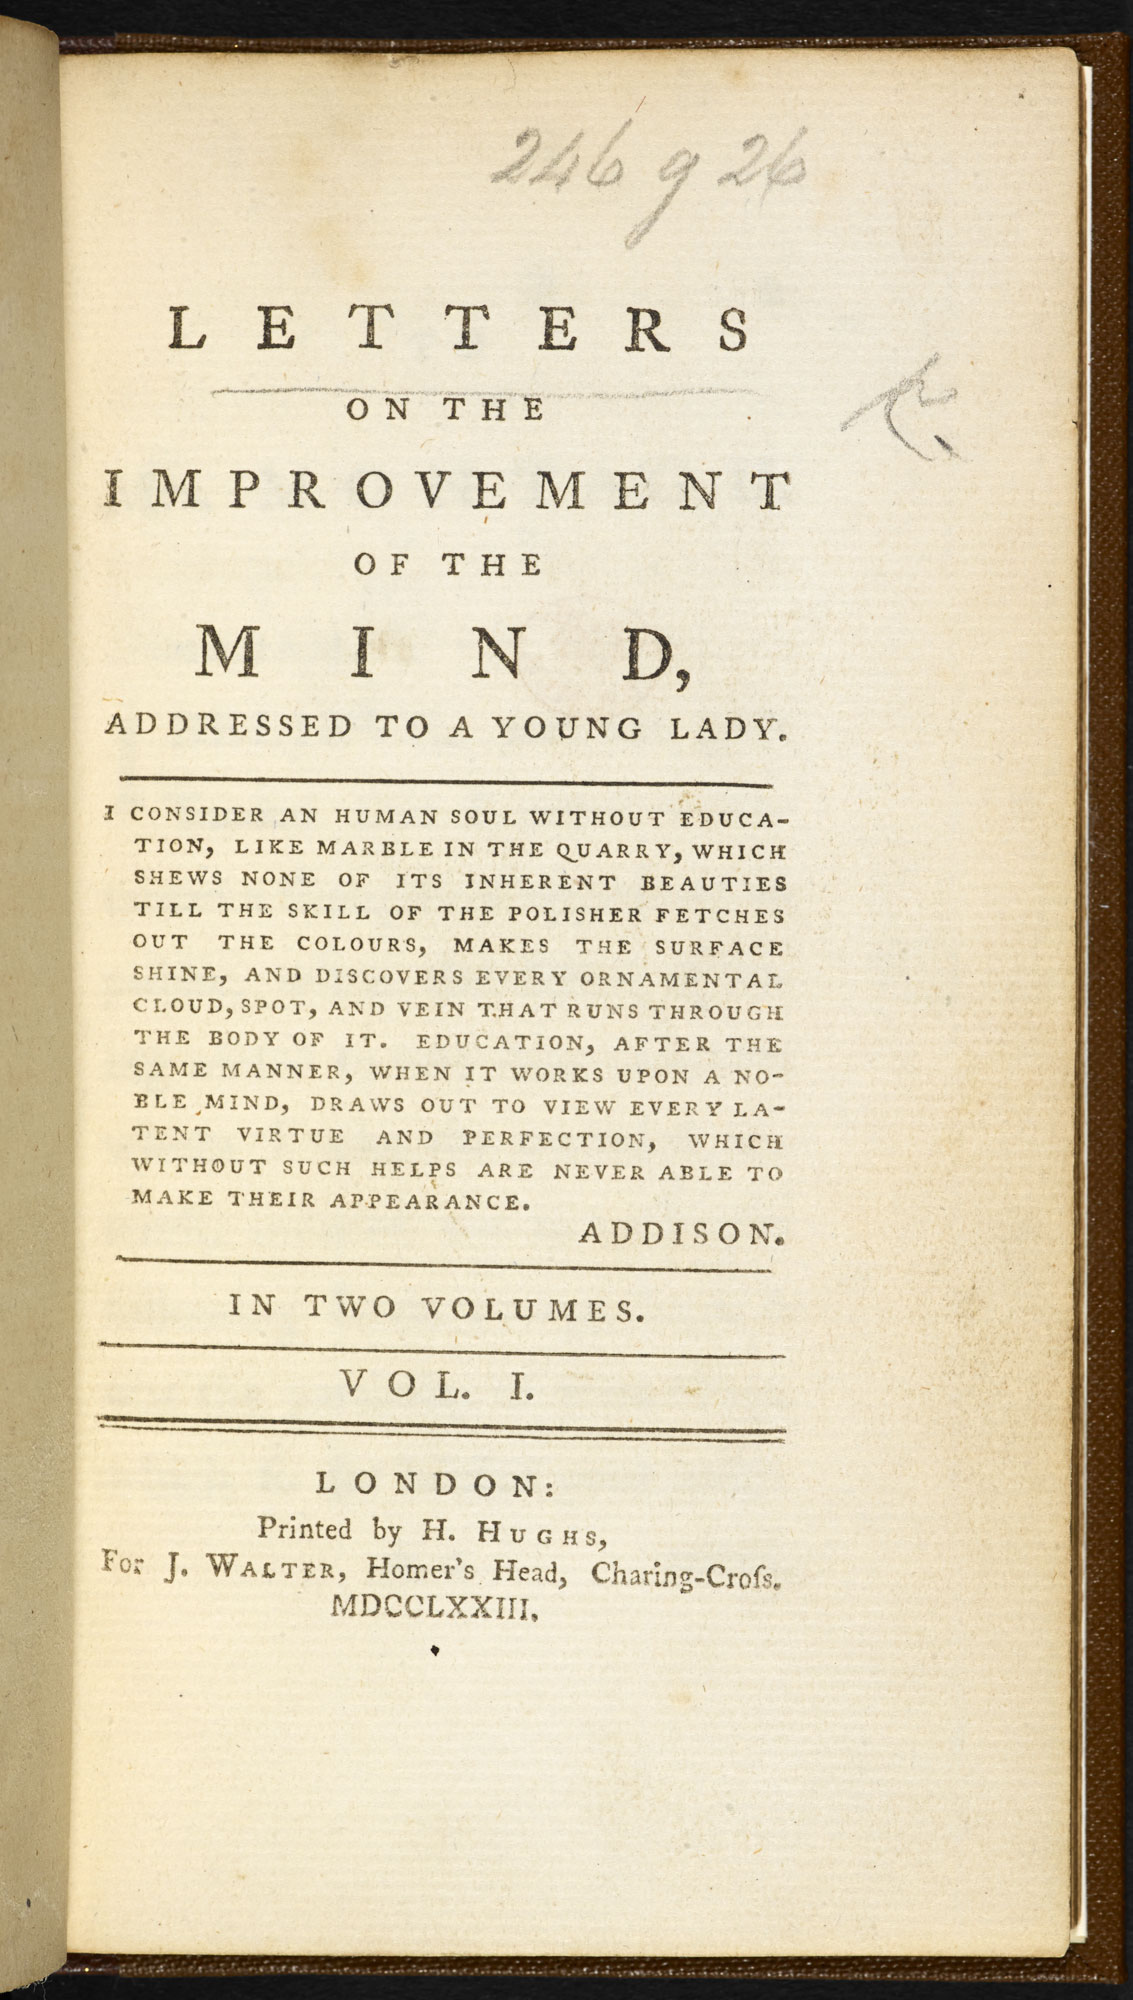 Letters on the Improvement of the Mind [page: vol. I title page]